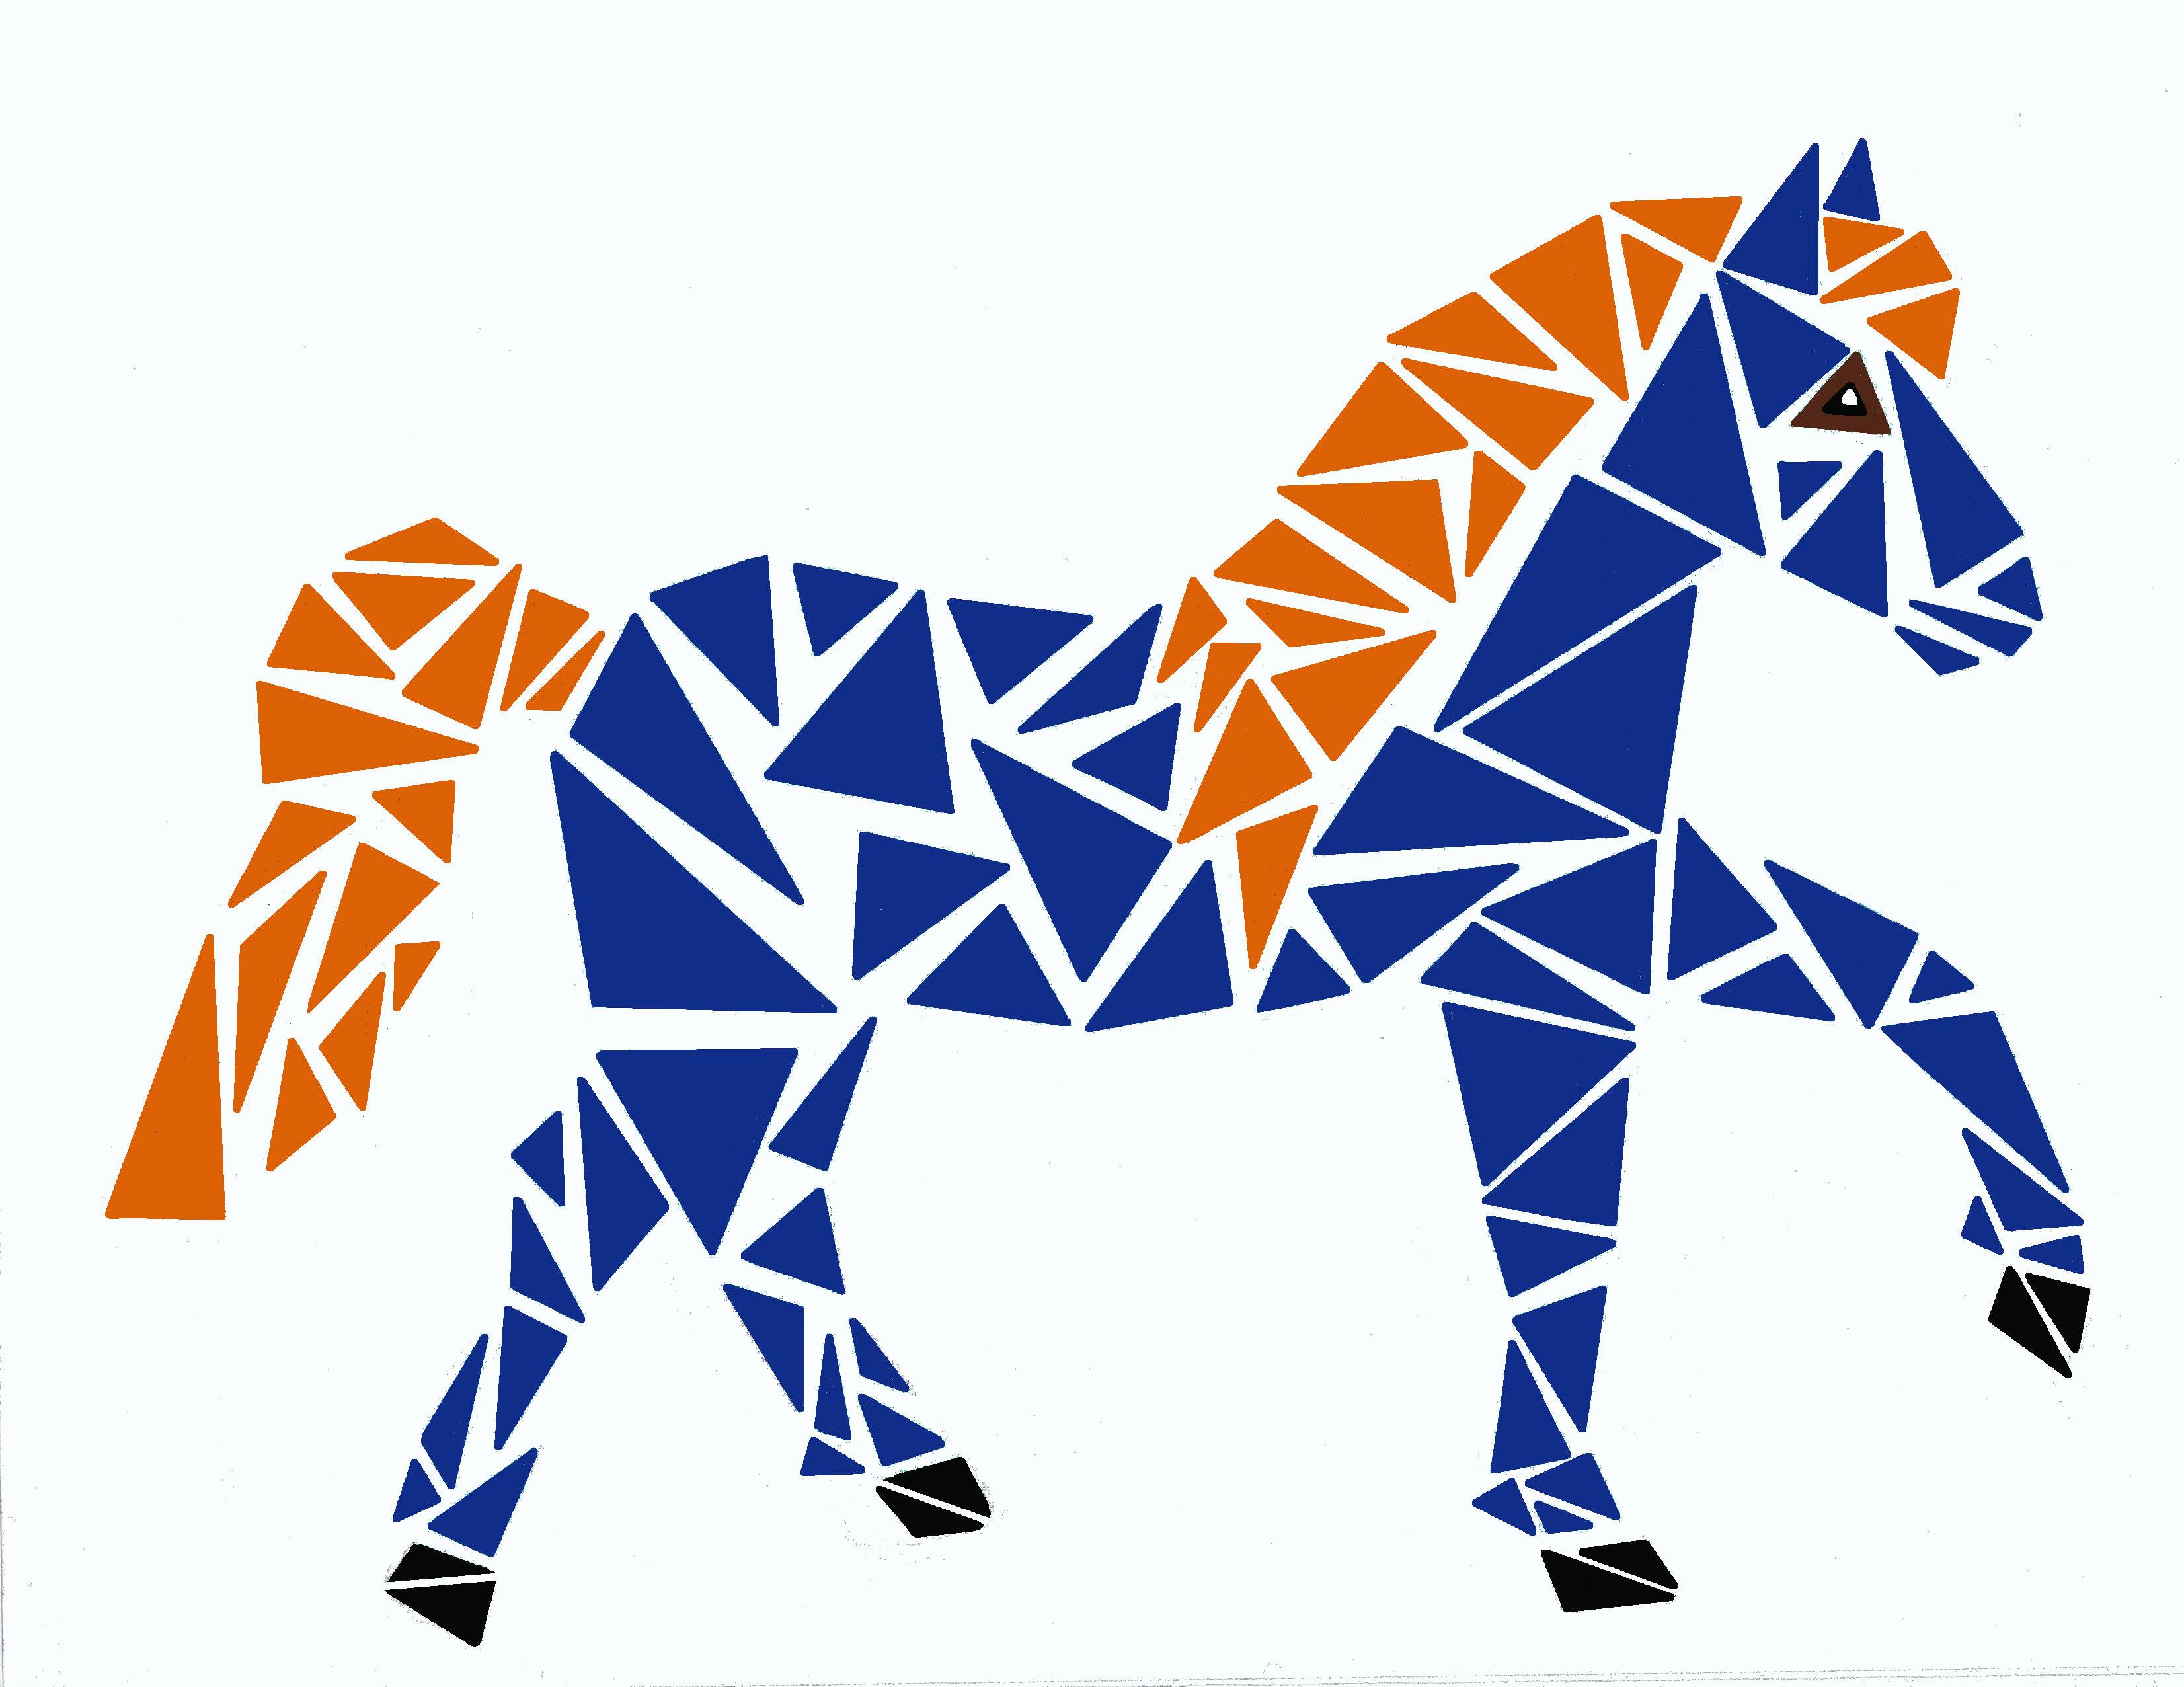 Orange and blue horse made of triangles